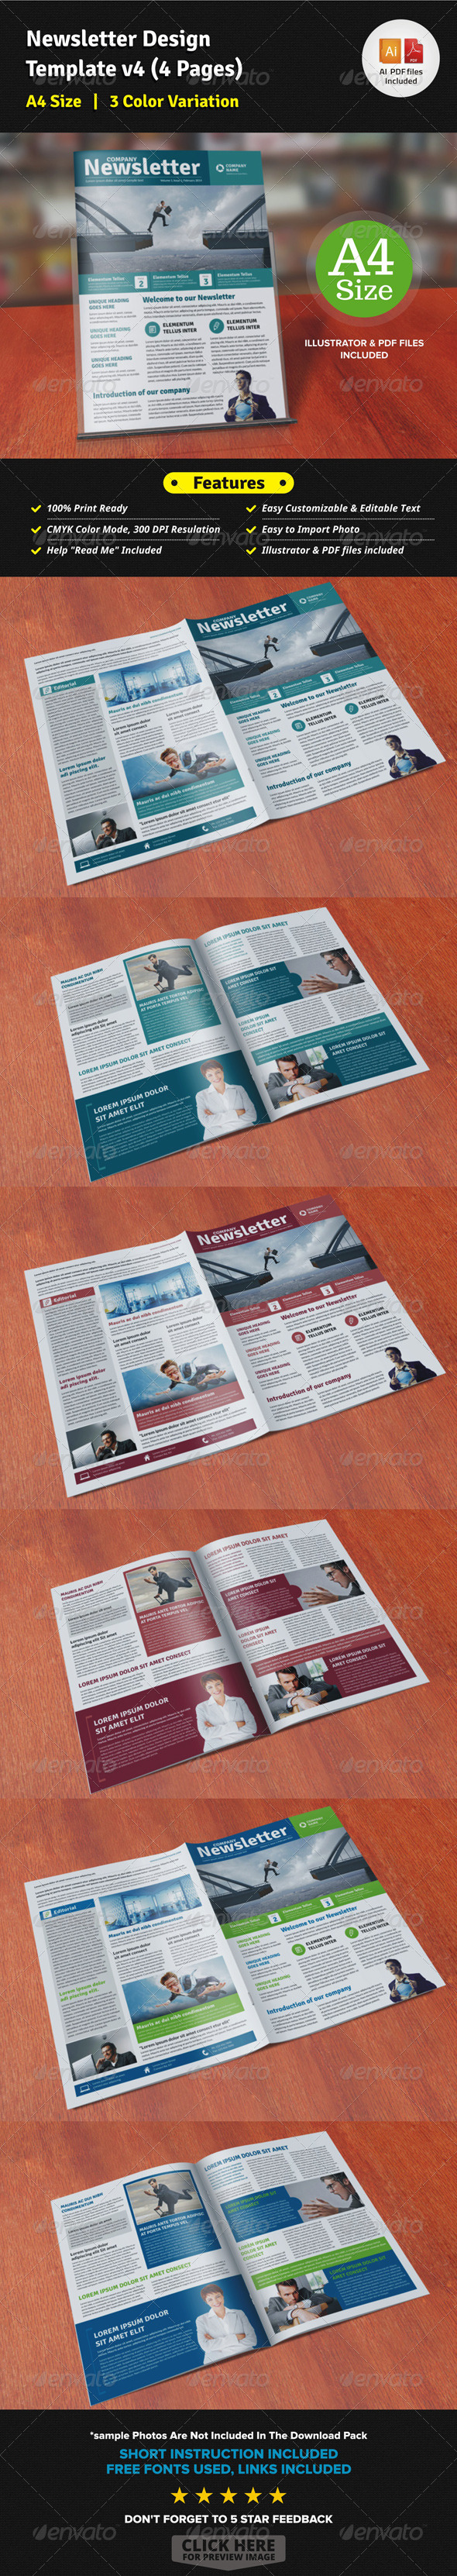 GraphicRiver Newsletter Design Template v4 4 Pages 7521975